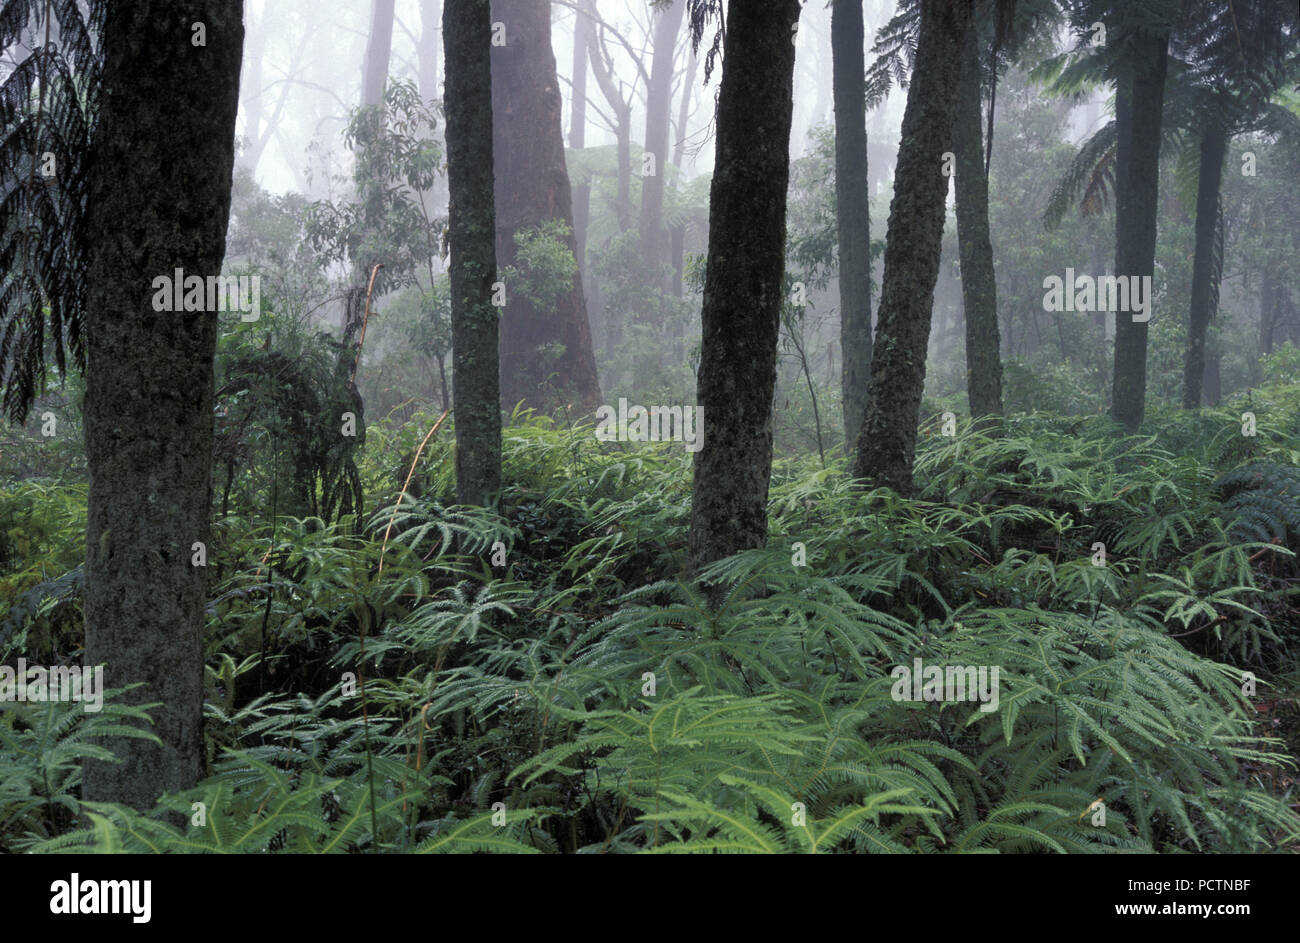 RAINFOREST SCENE, MOUNT WILSON IN THE BLUE MOUNTAINS, NEW SOUTH WALES, AUSTRALIA - Stock Image